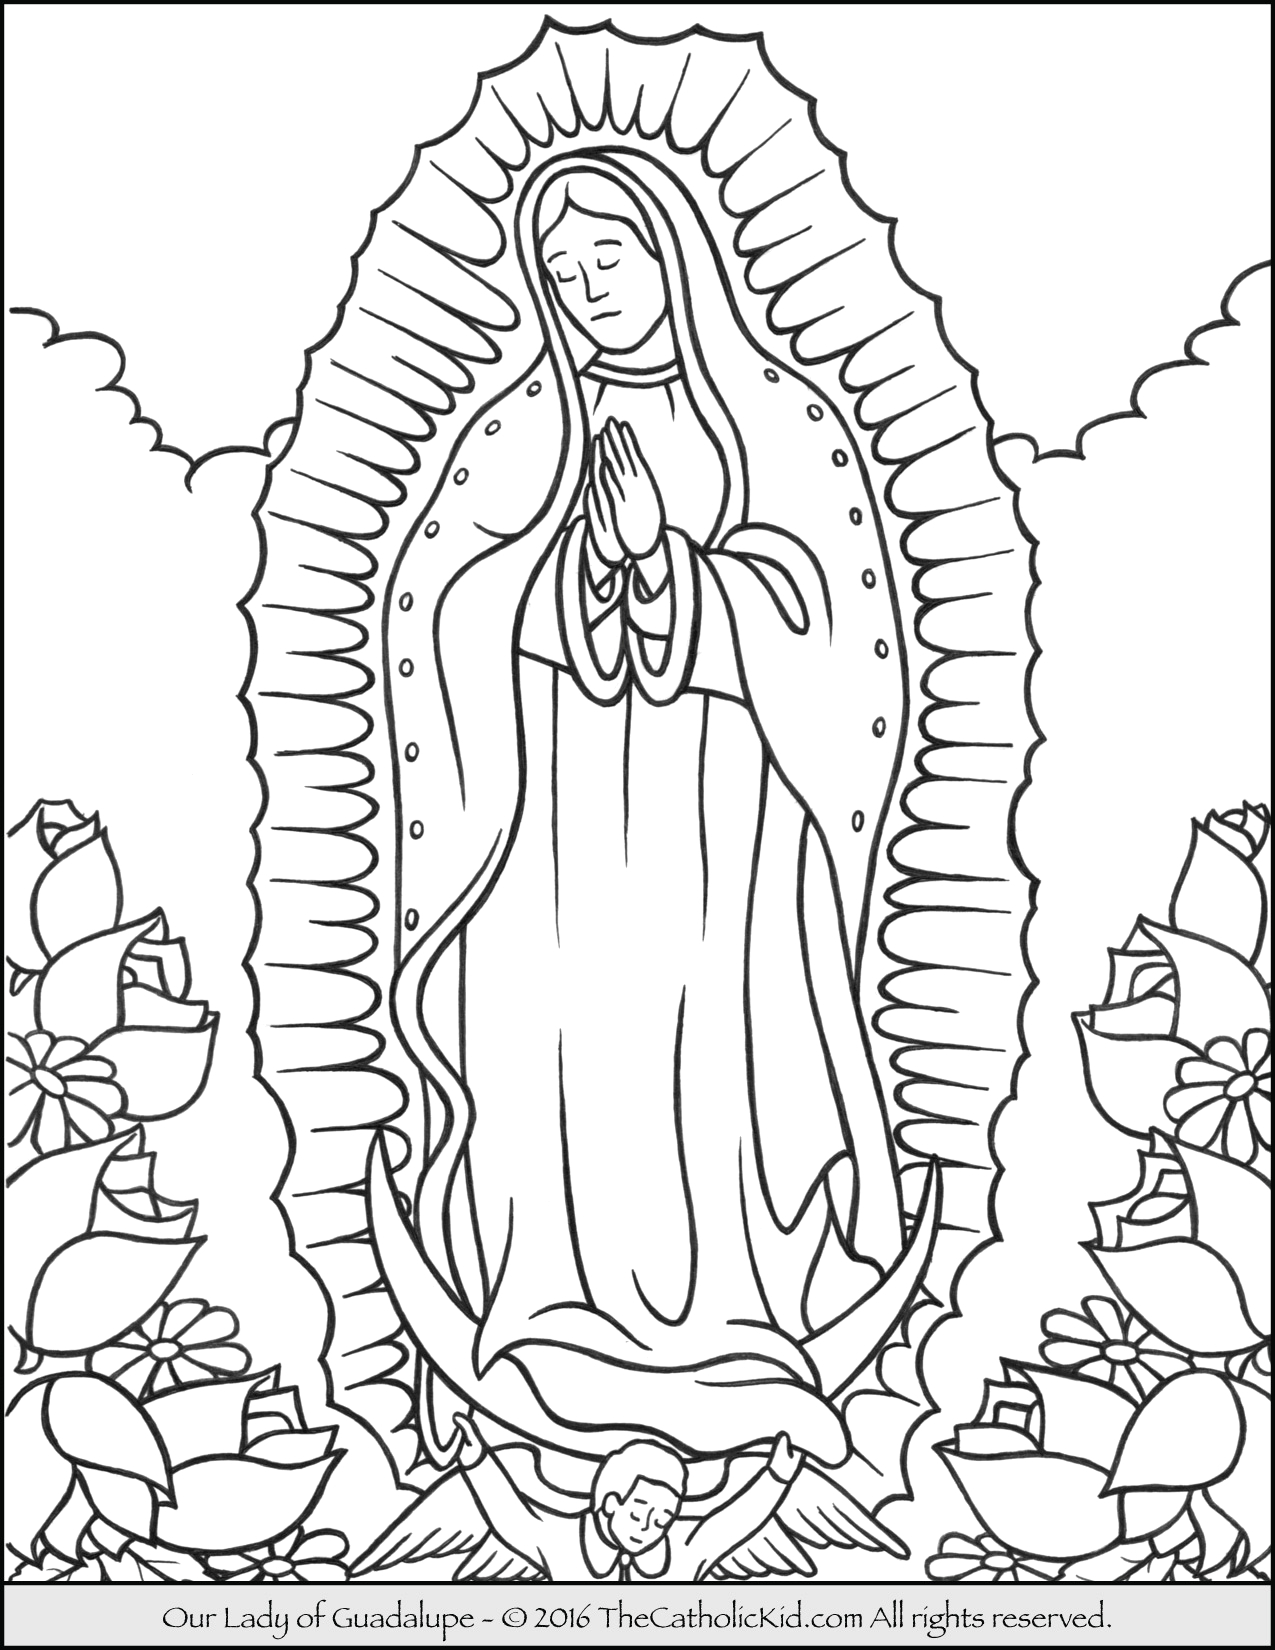 Coloring Page Of Our Lady Of Guadalupe Our Lady Of Guadalupe Coloring Page thecatholickid